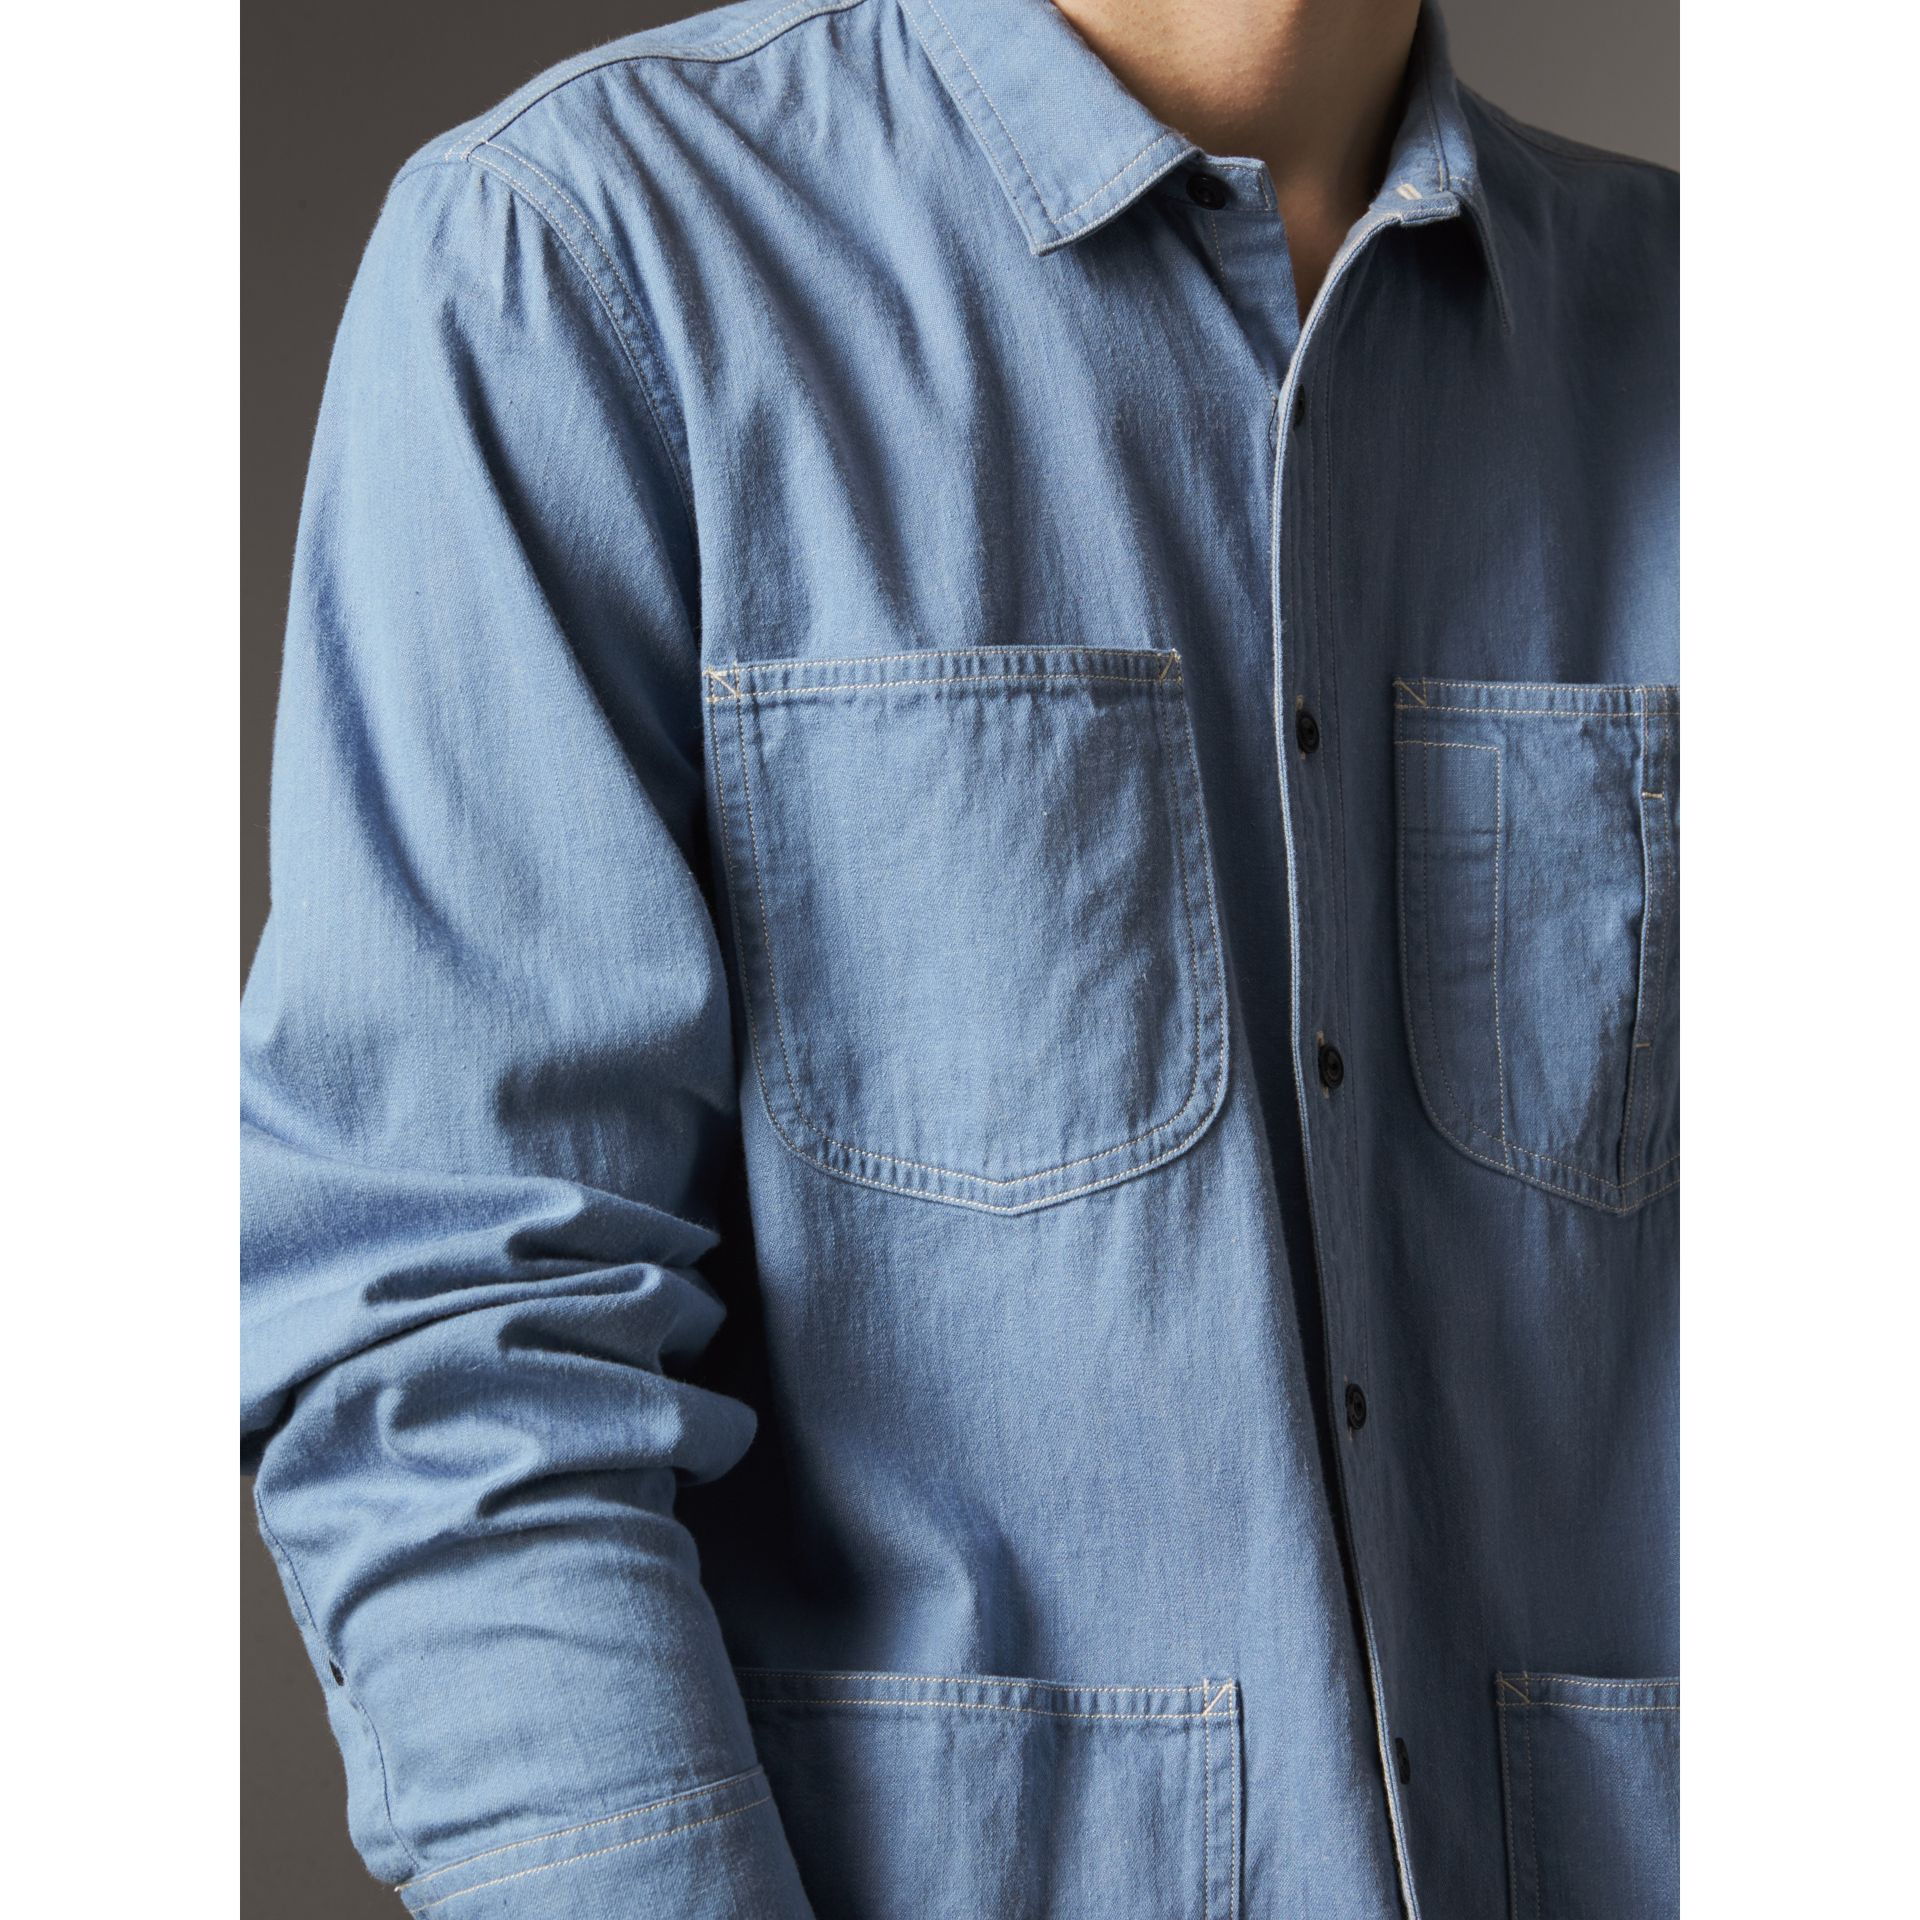 Japanese Denim Work Shirt in Light Blue - Men | Burberry United Kingdom - gallery image 1